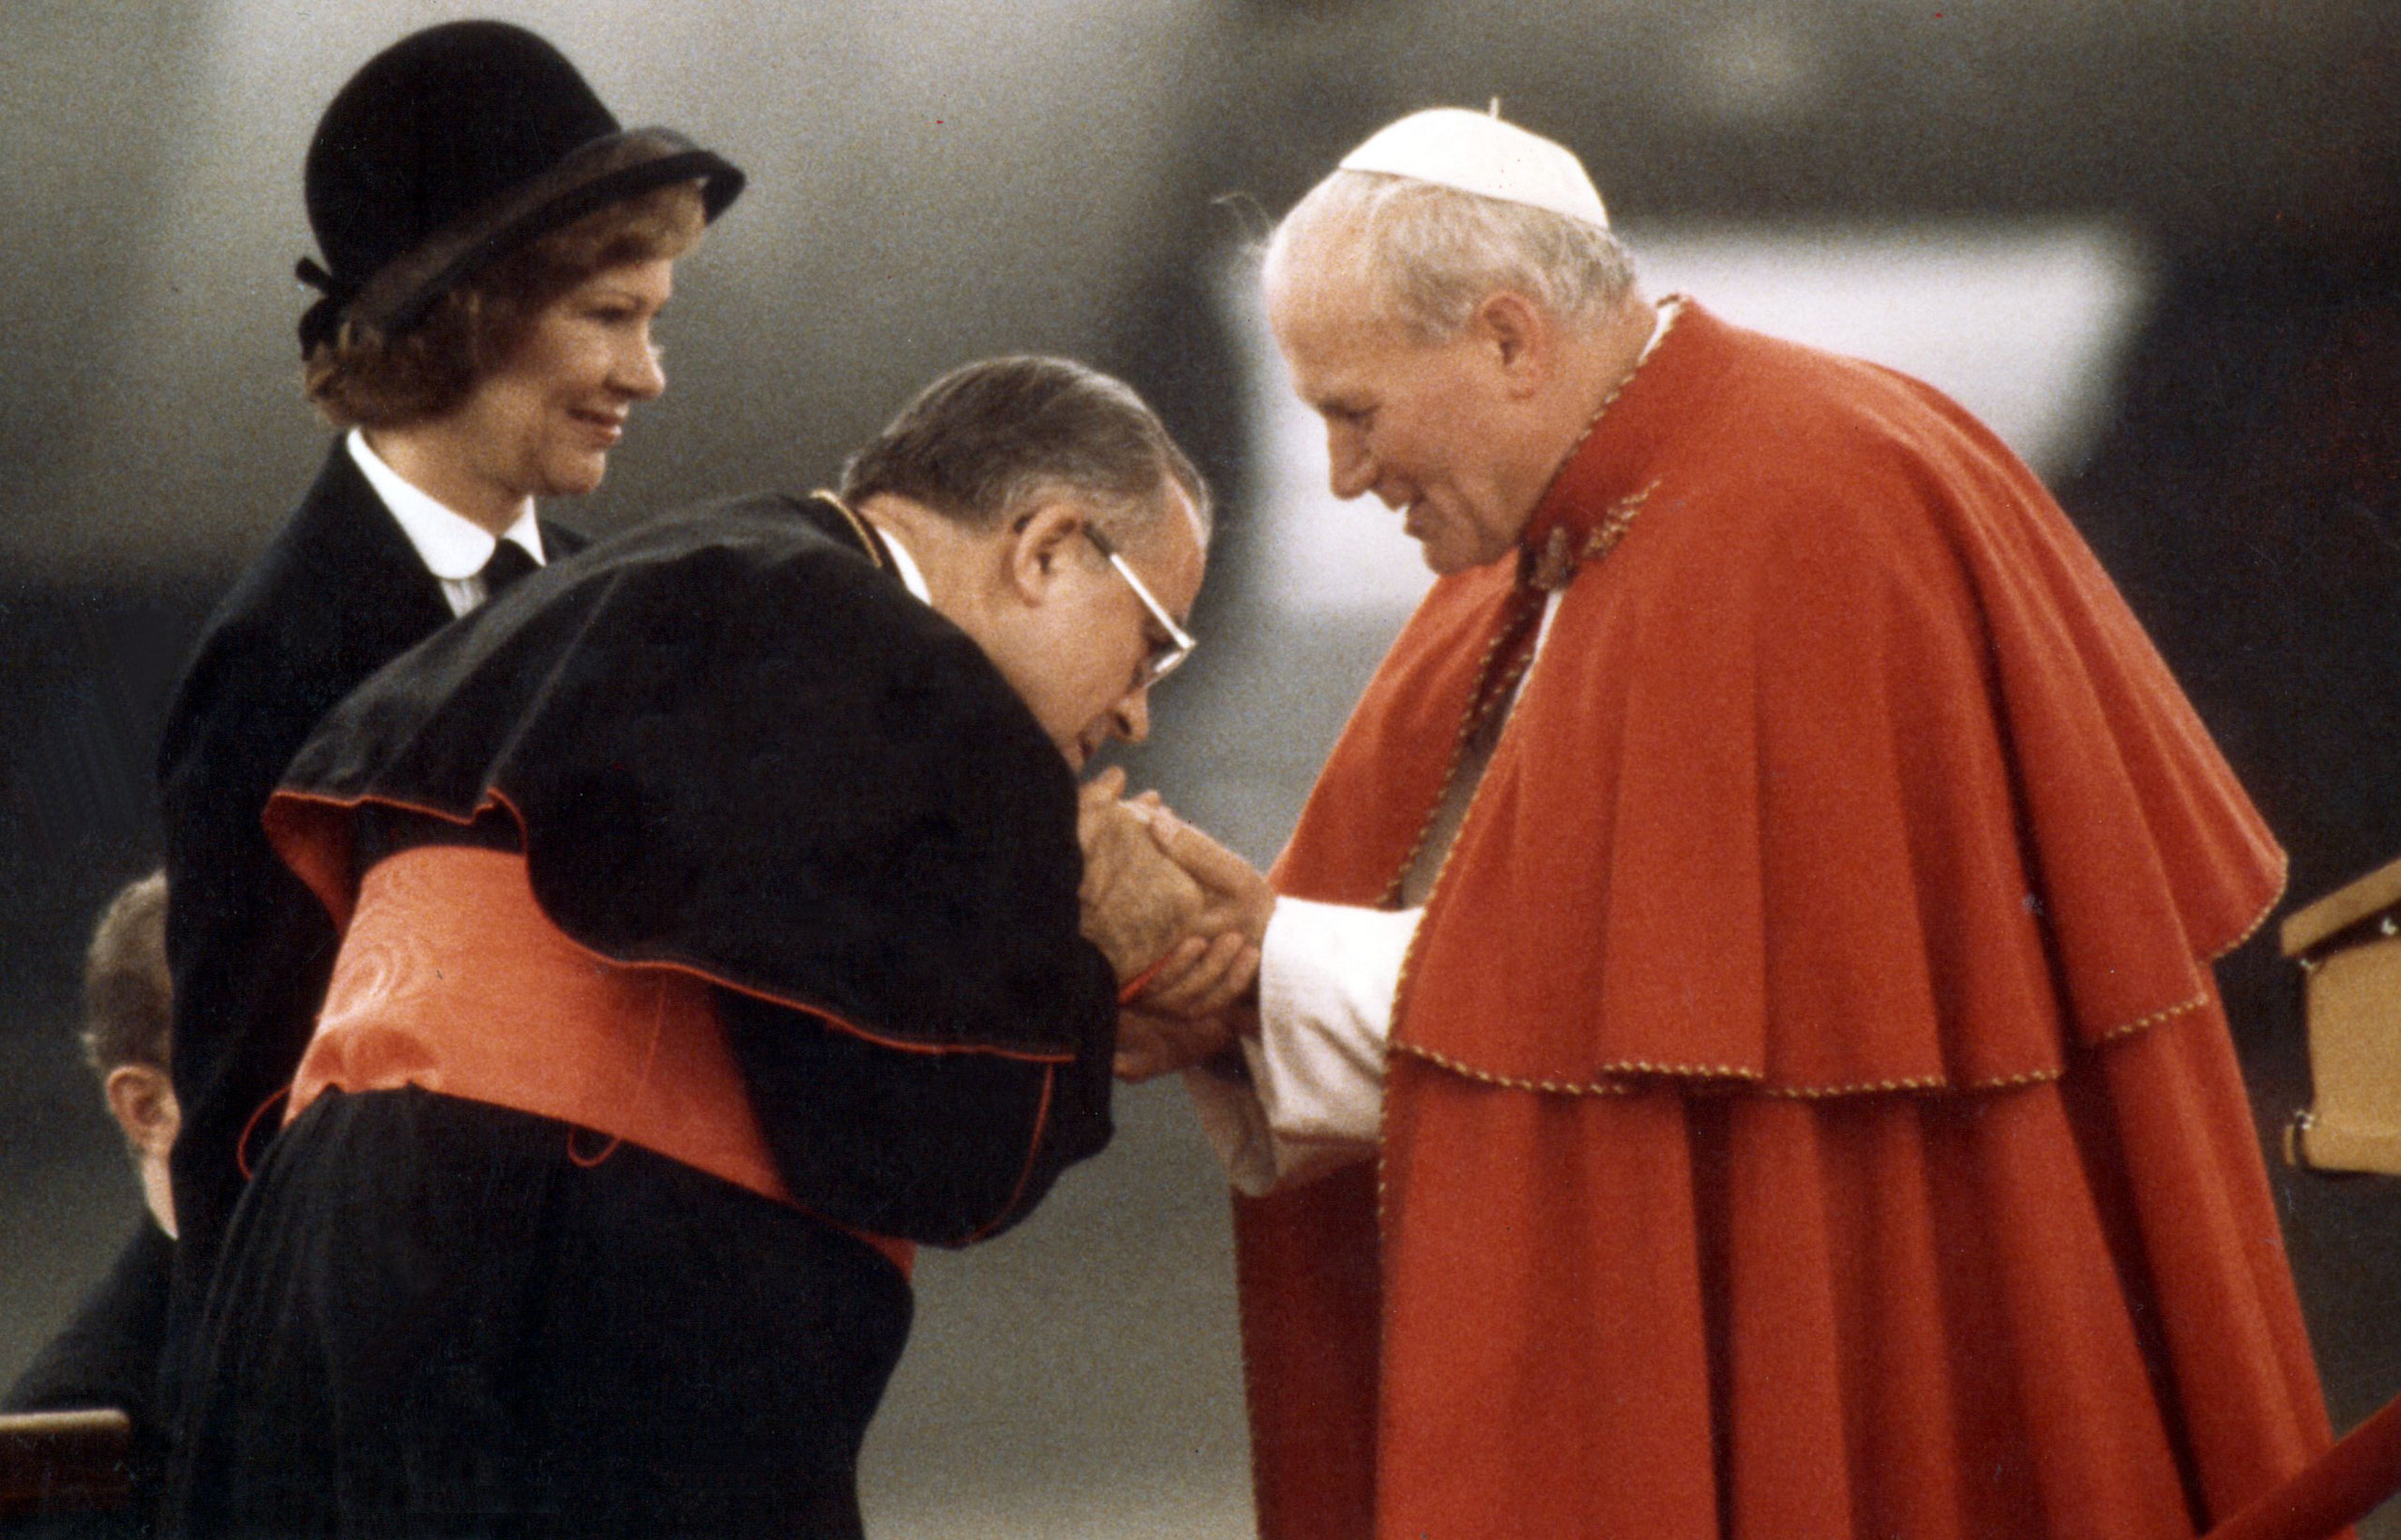 Cardinal Humberto S. Mederios and first lady Rosalyn Carter greeted Pope John Paul II on his arrival at Logan Airport. Boston, Oct. 1, 1979.